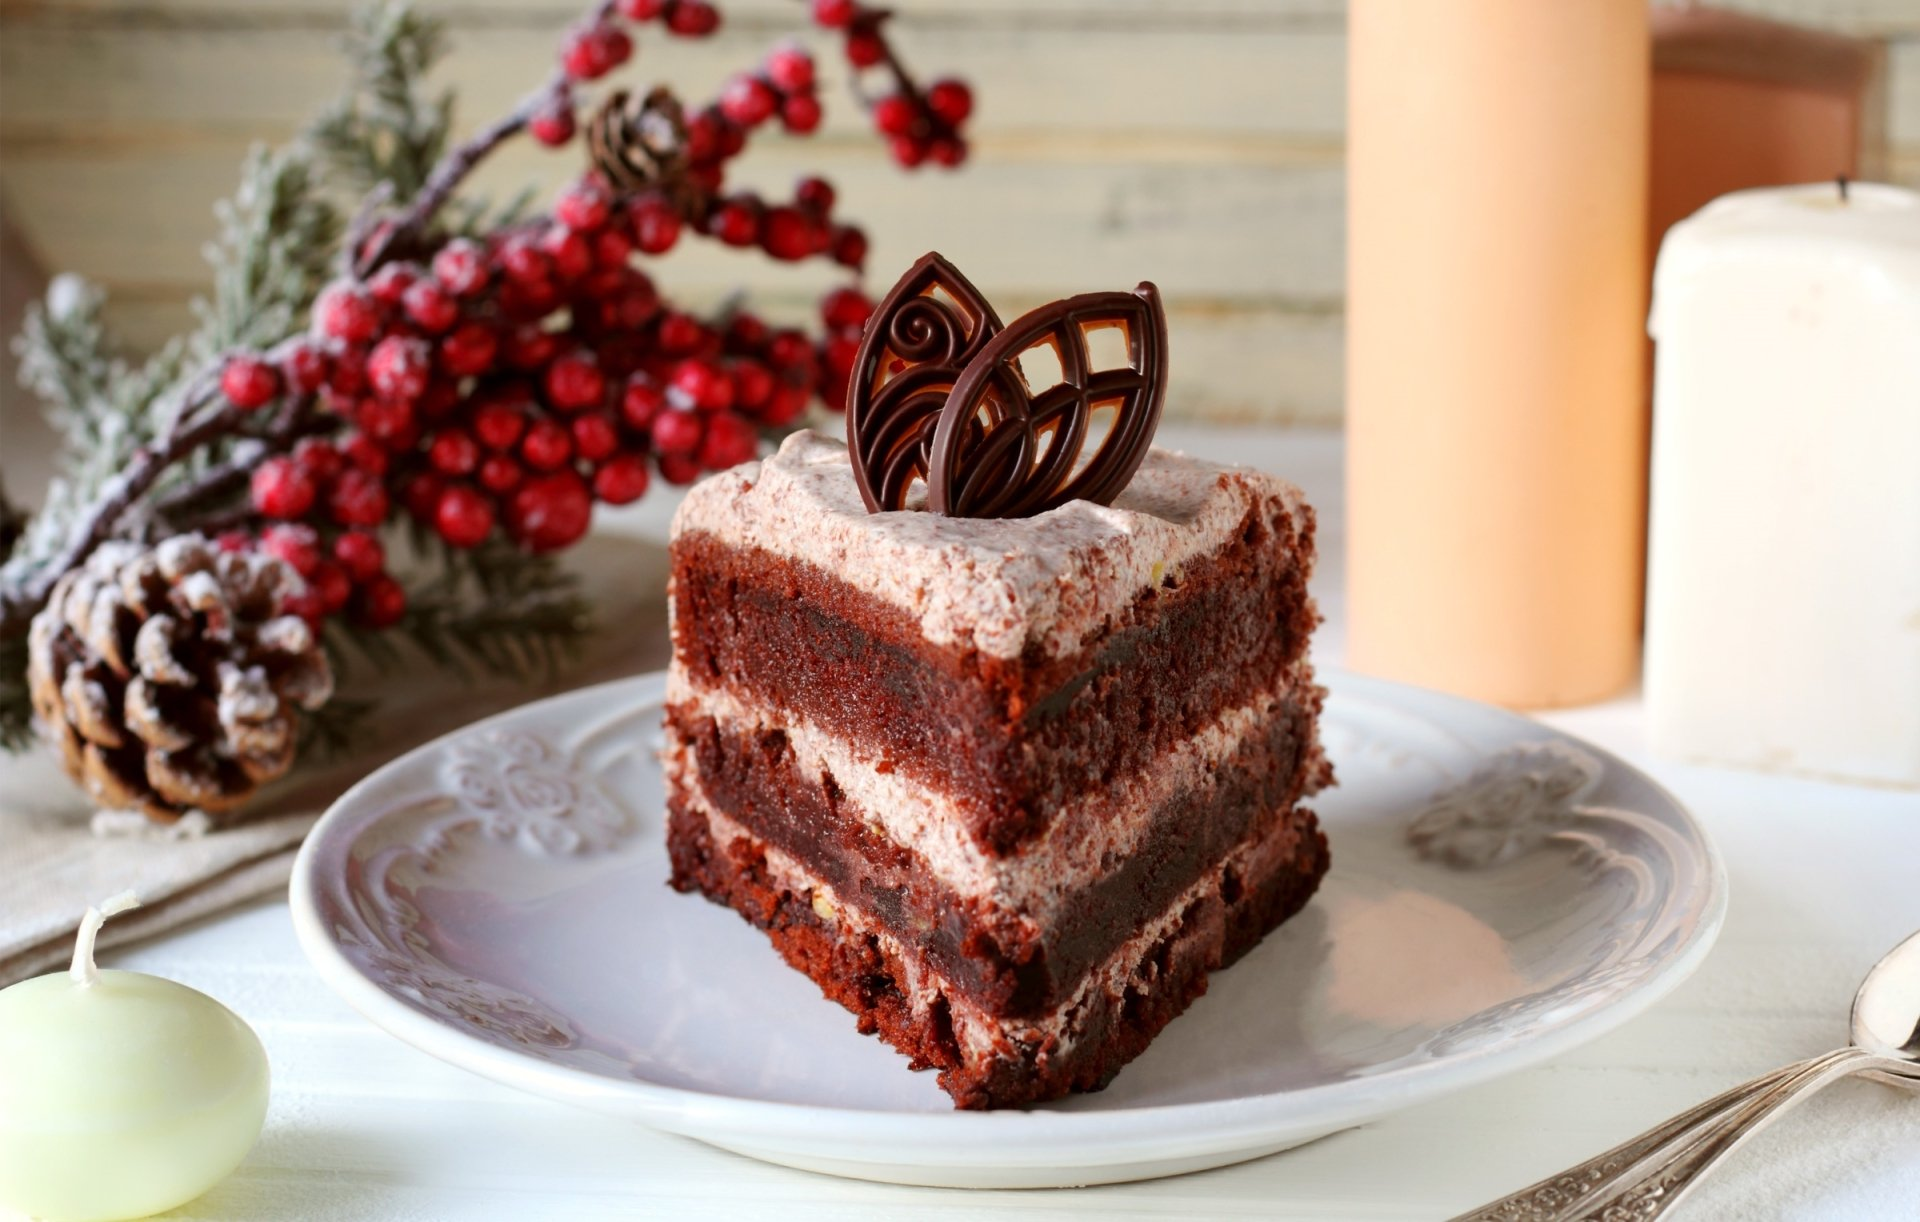 Food - Dessert  Cake Chocolate Pastry Wallpaper